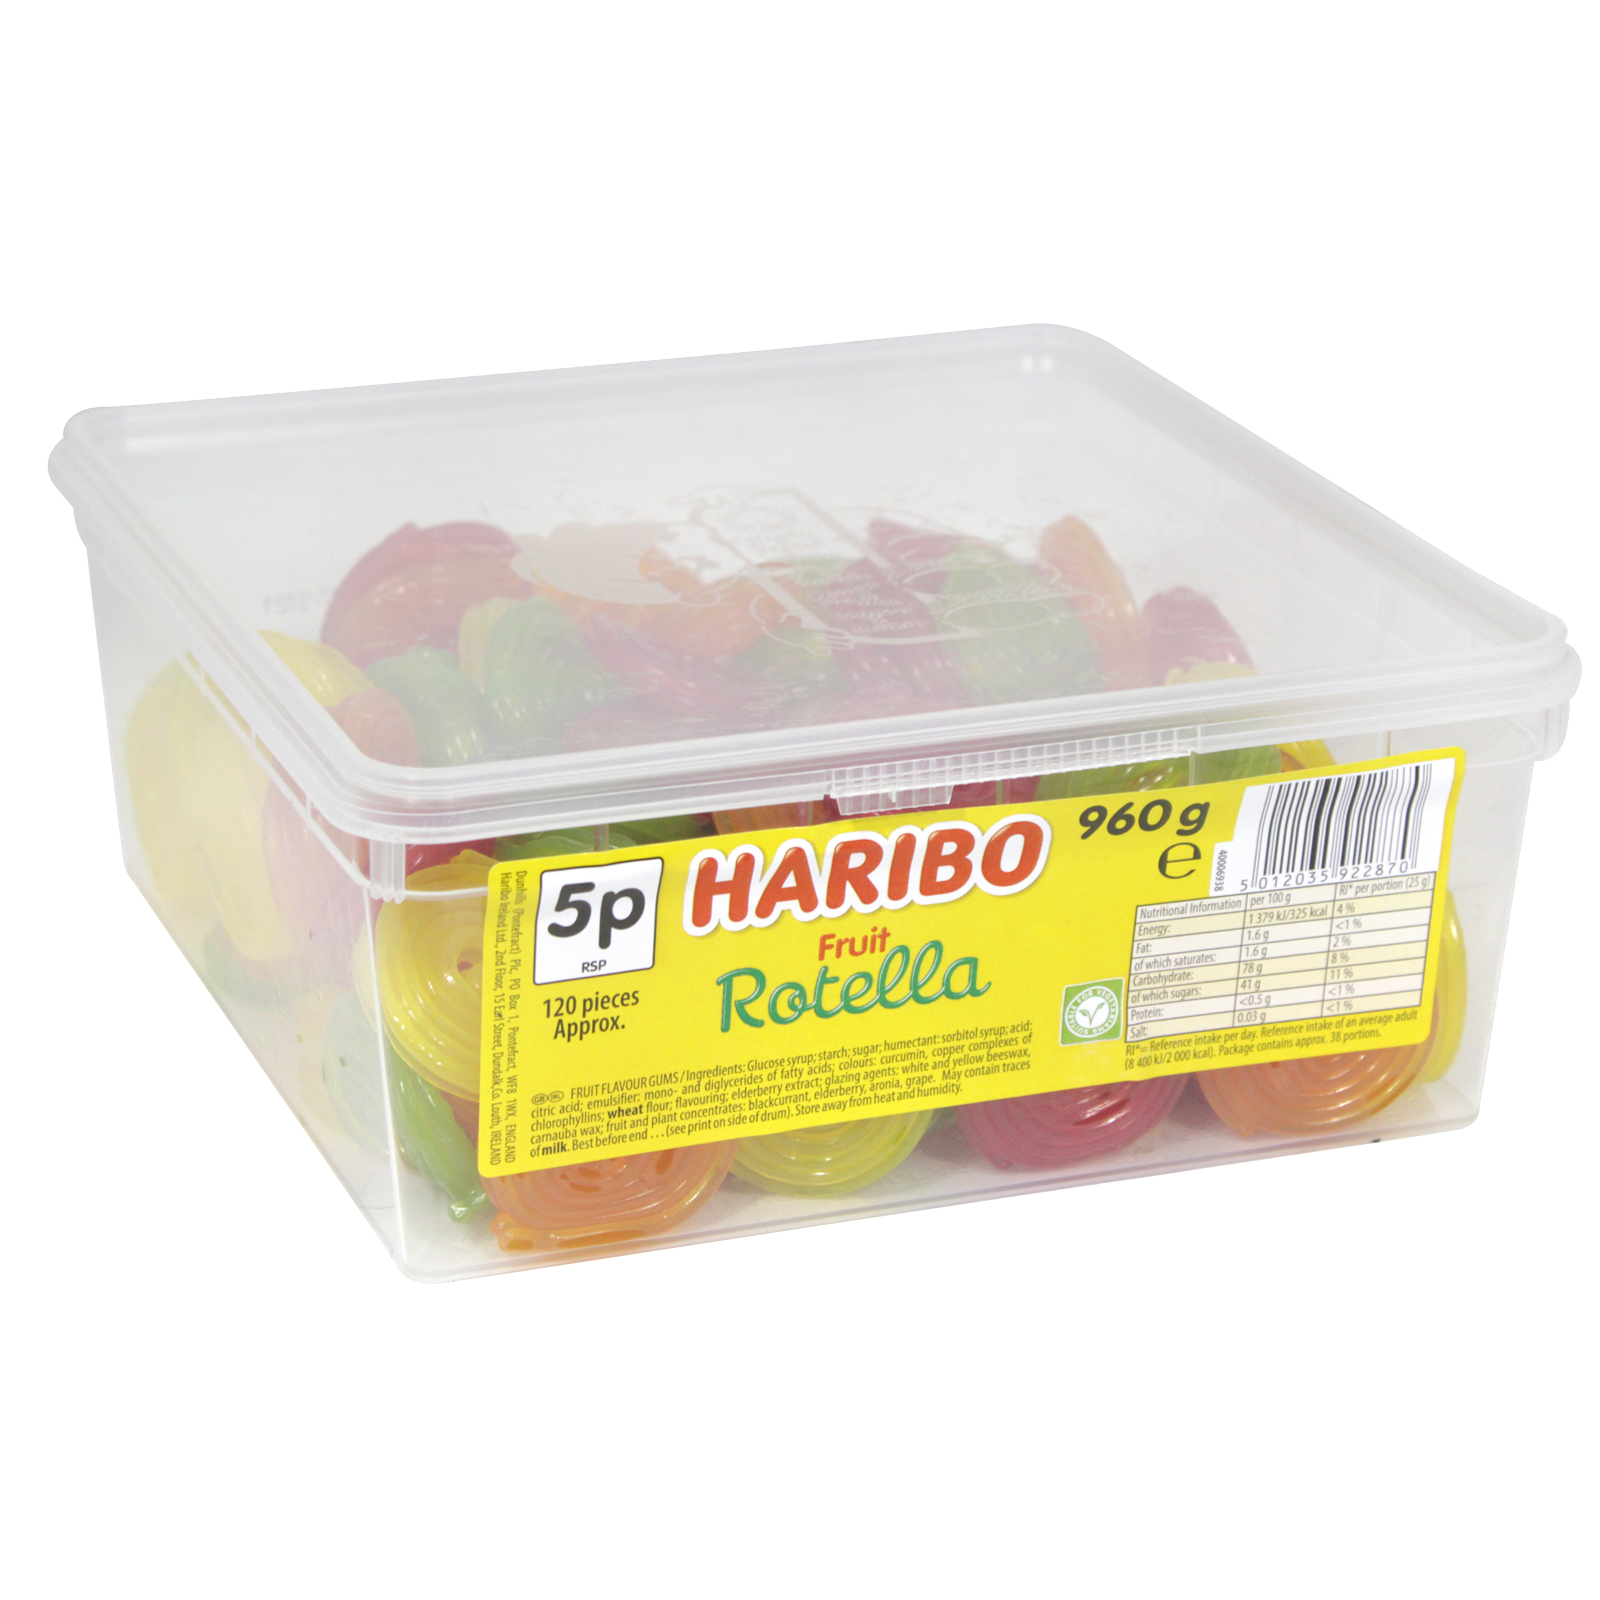 HARIBO ROTELLA DRUM 960G APPROX 120 PIECES